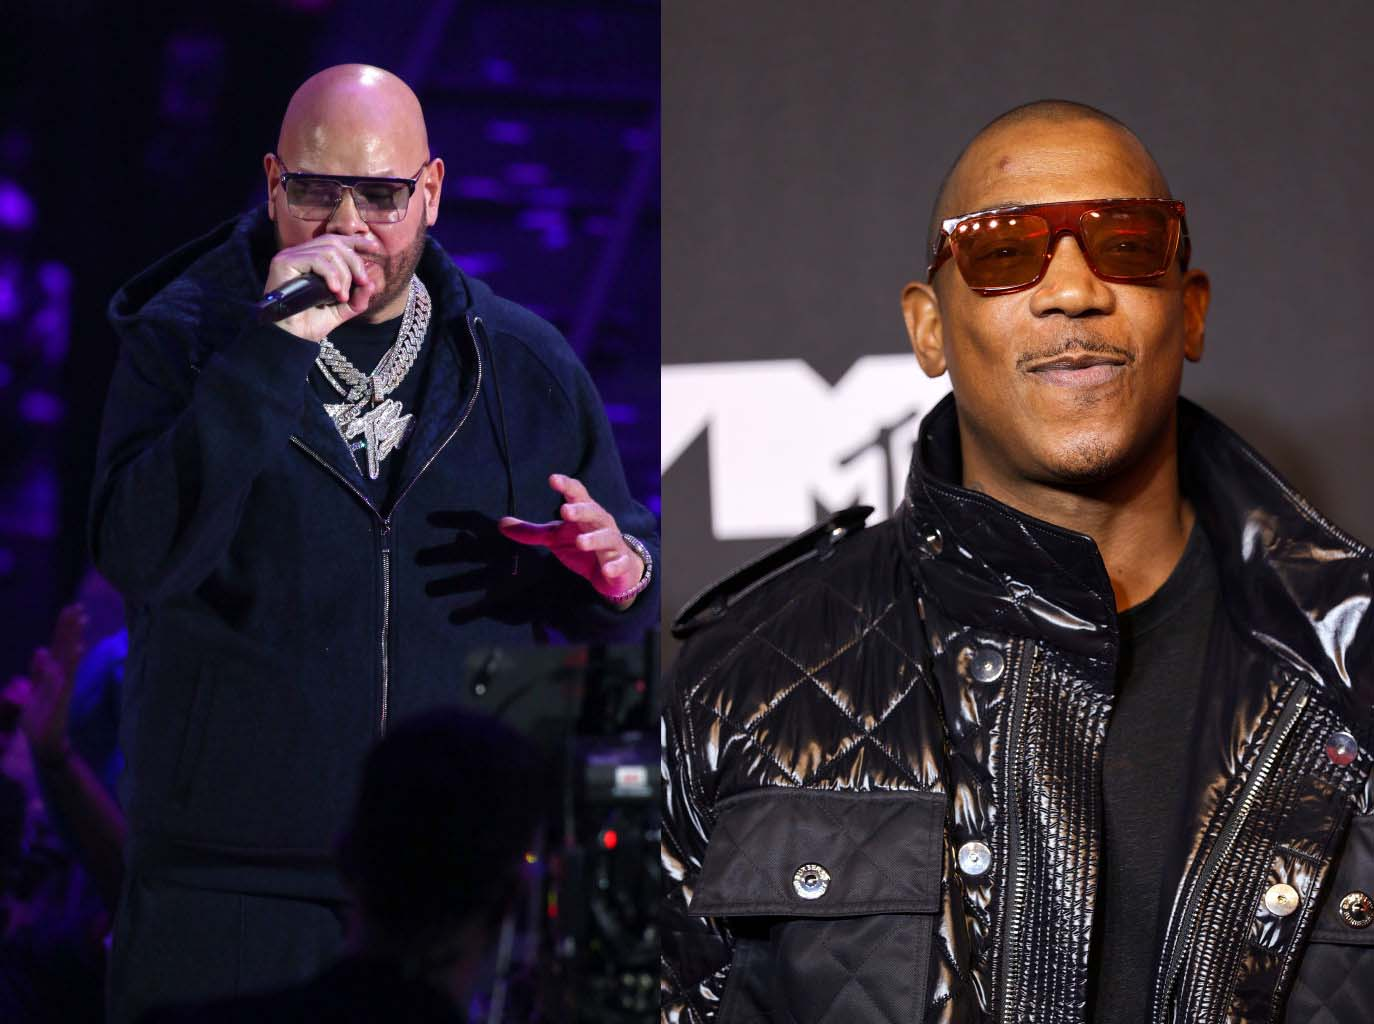 Ja Rule Dumps Fat Joe In 'Heated' VERZUZ Battle, Rappers 'Classic' Moments From Event Explored